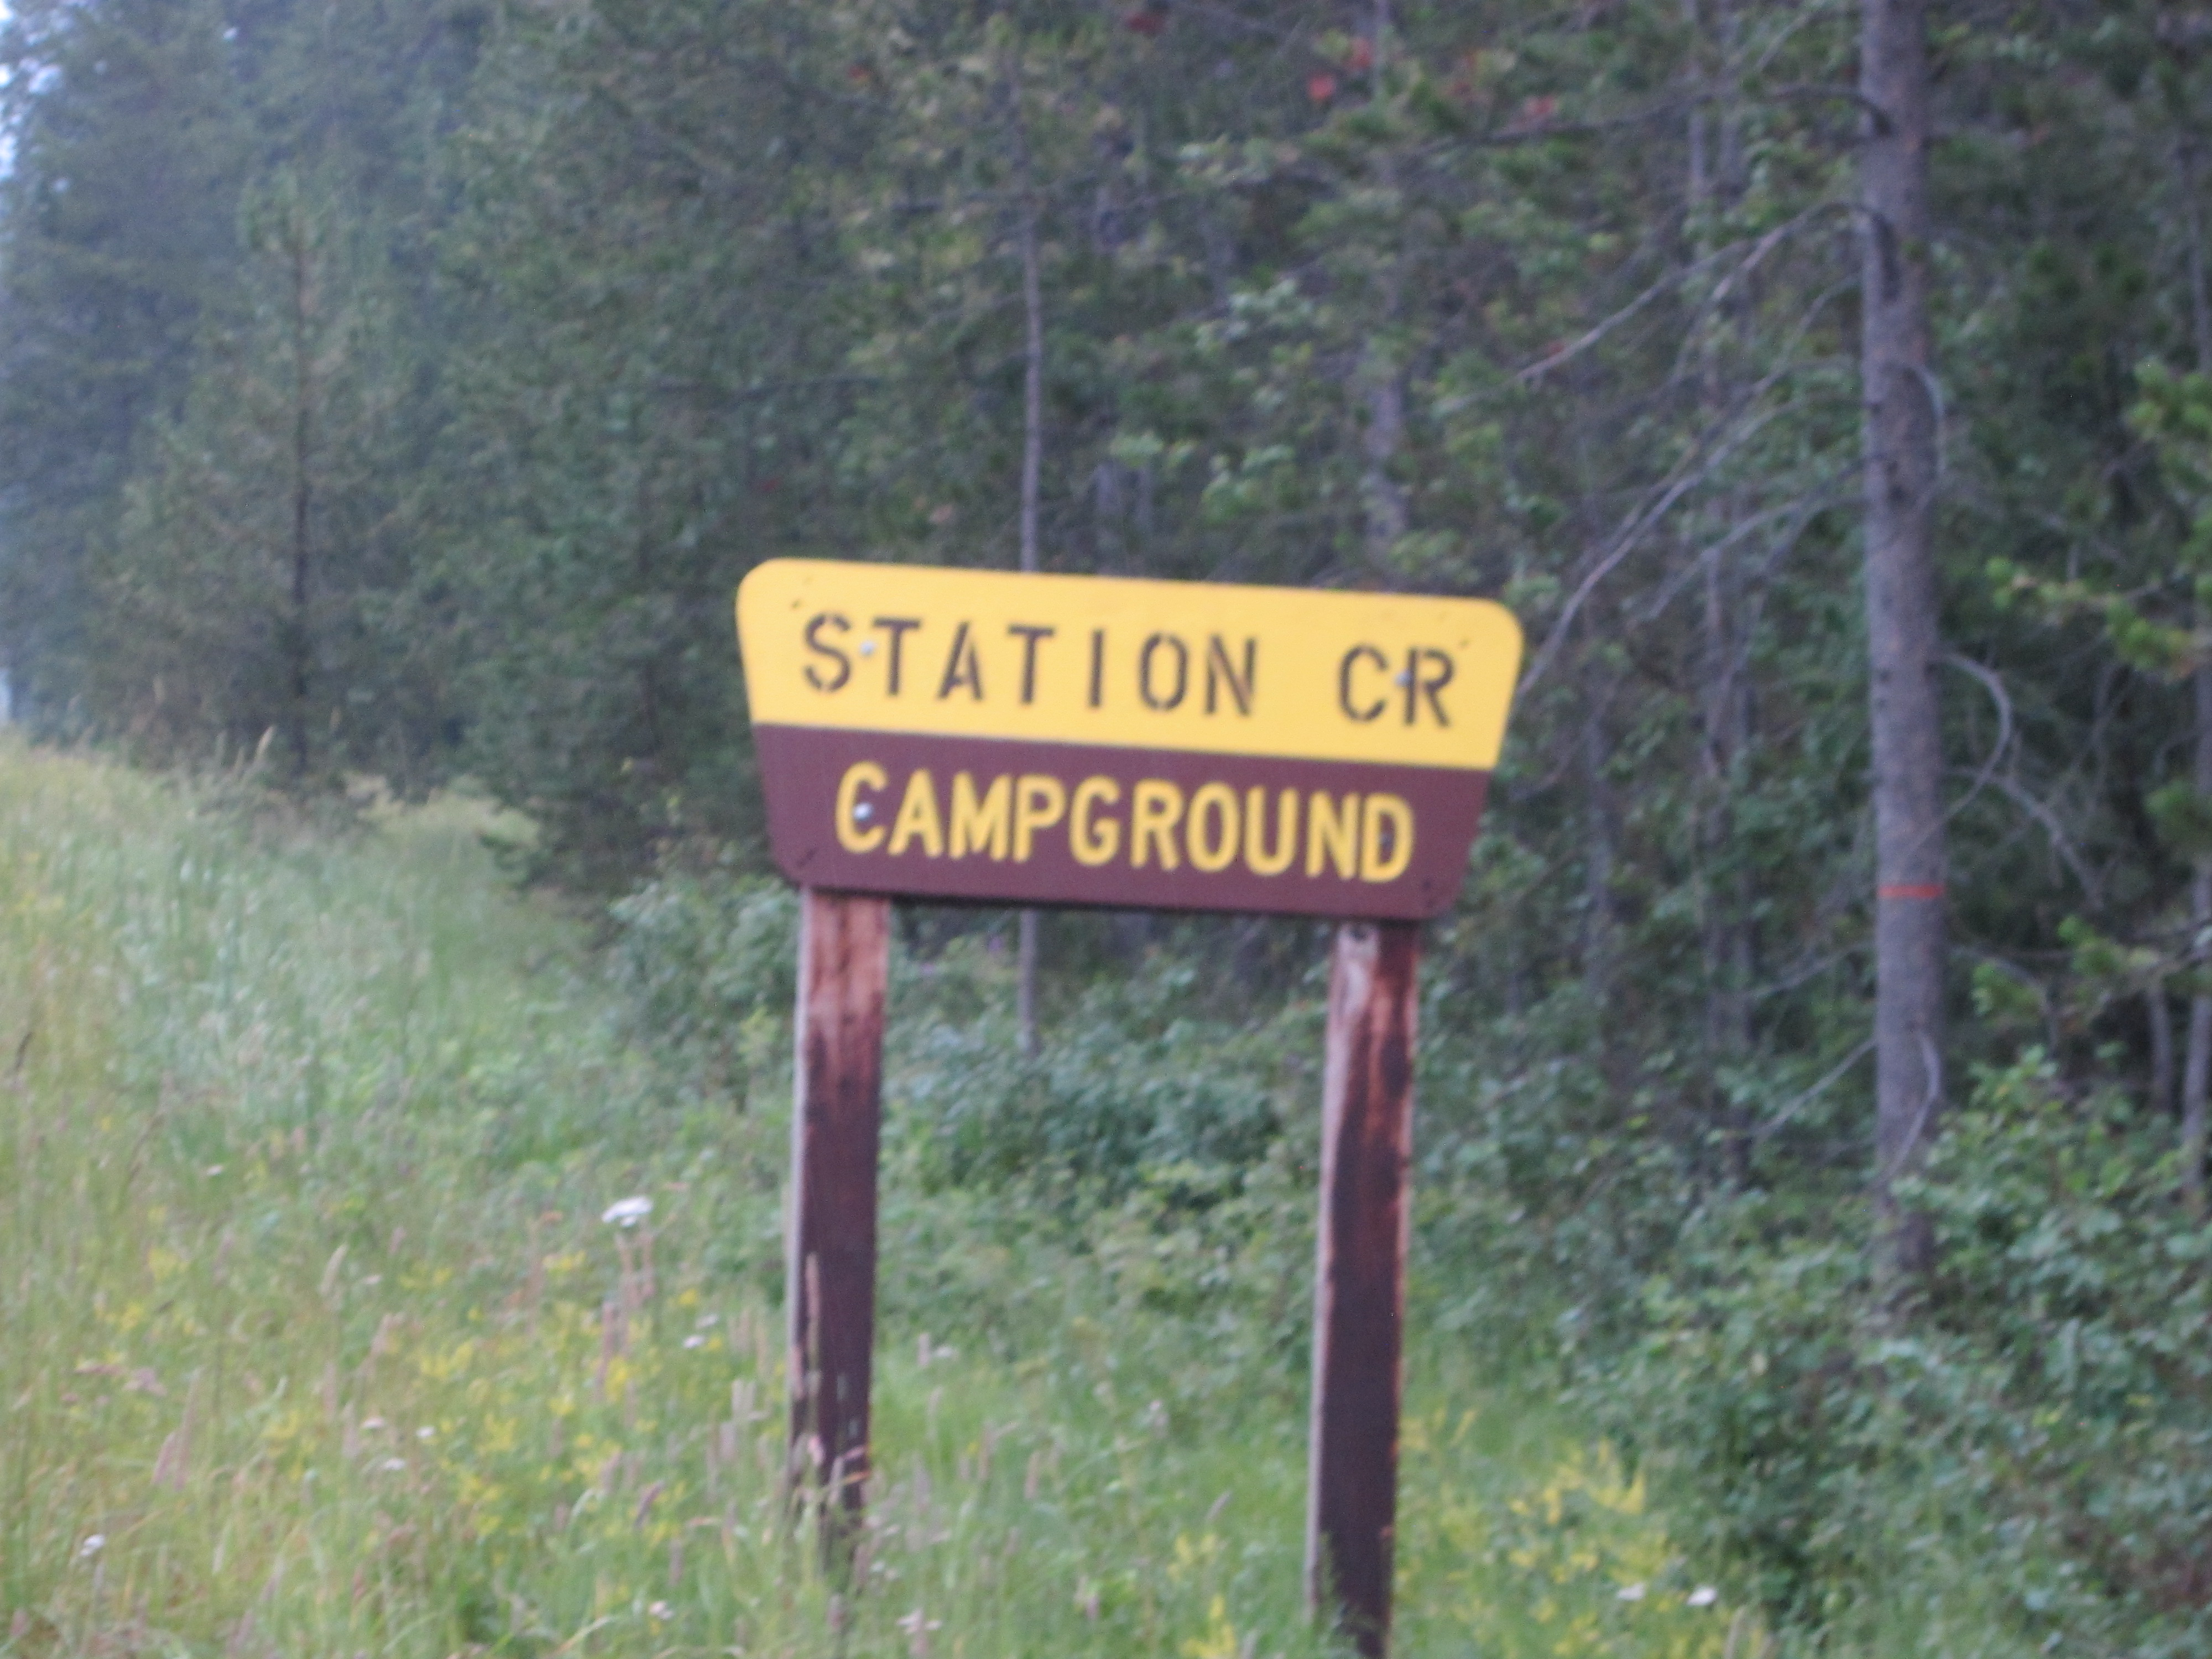 Station Creek Campground Trail Sign